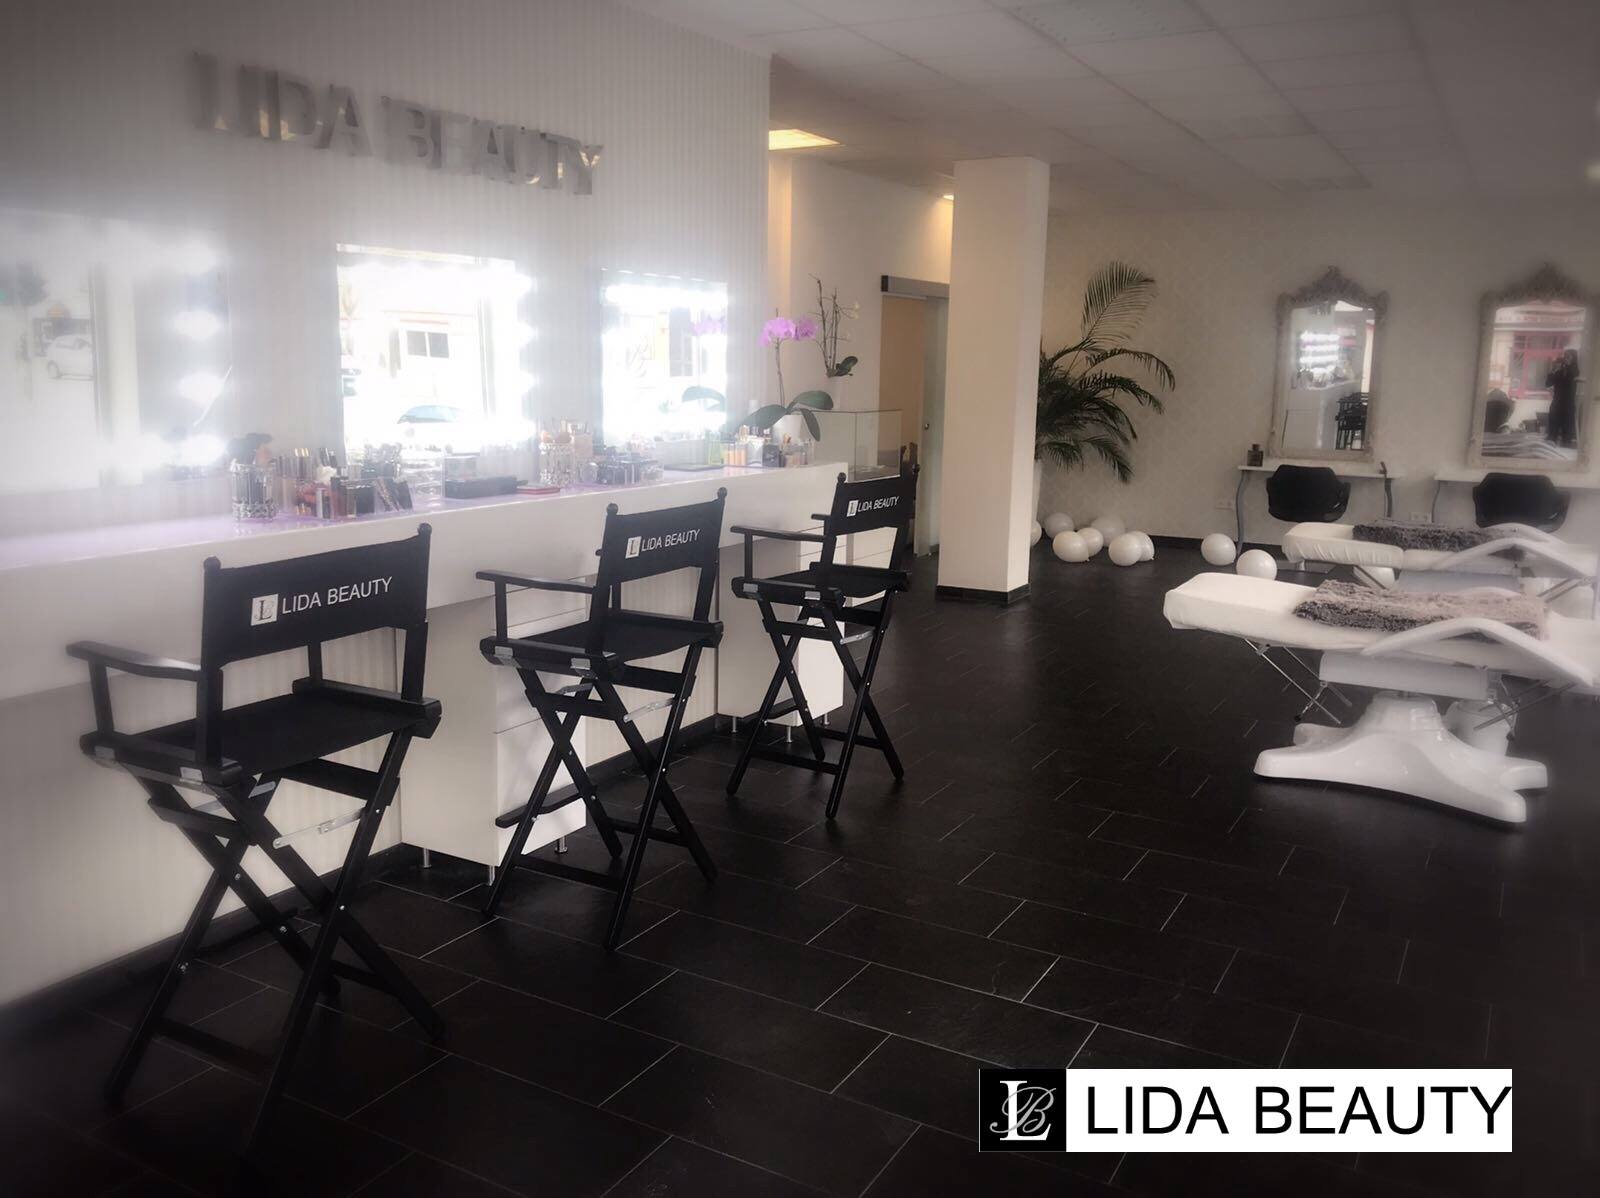 LB Lida Beauty - Make Up Bereich